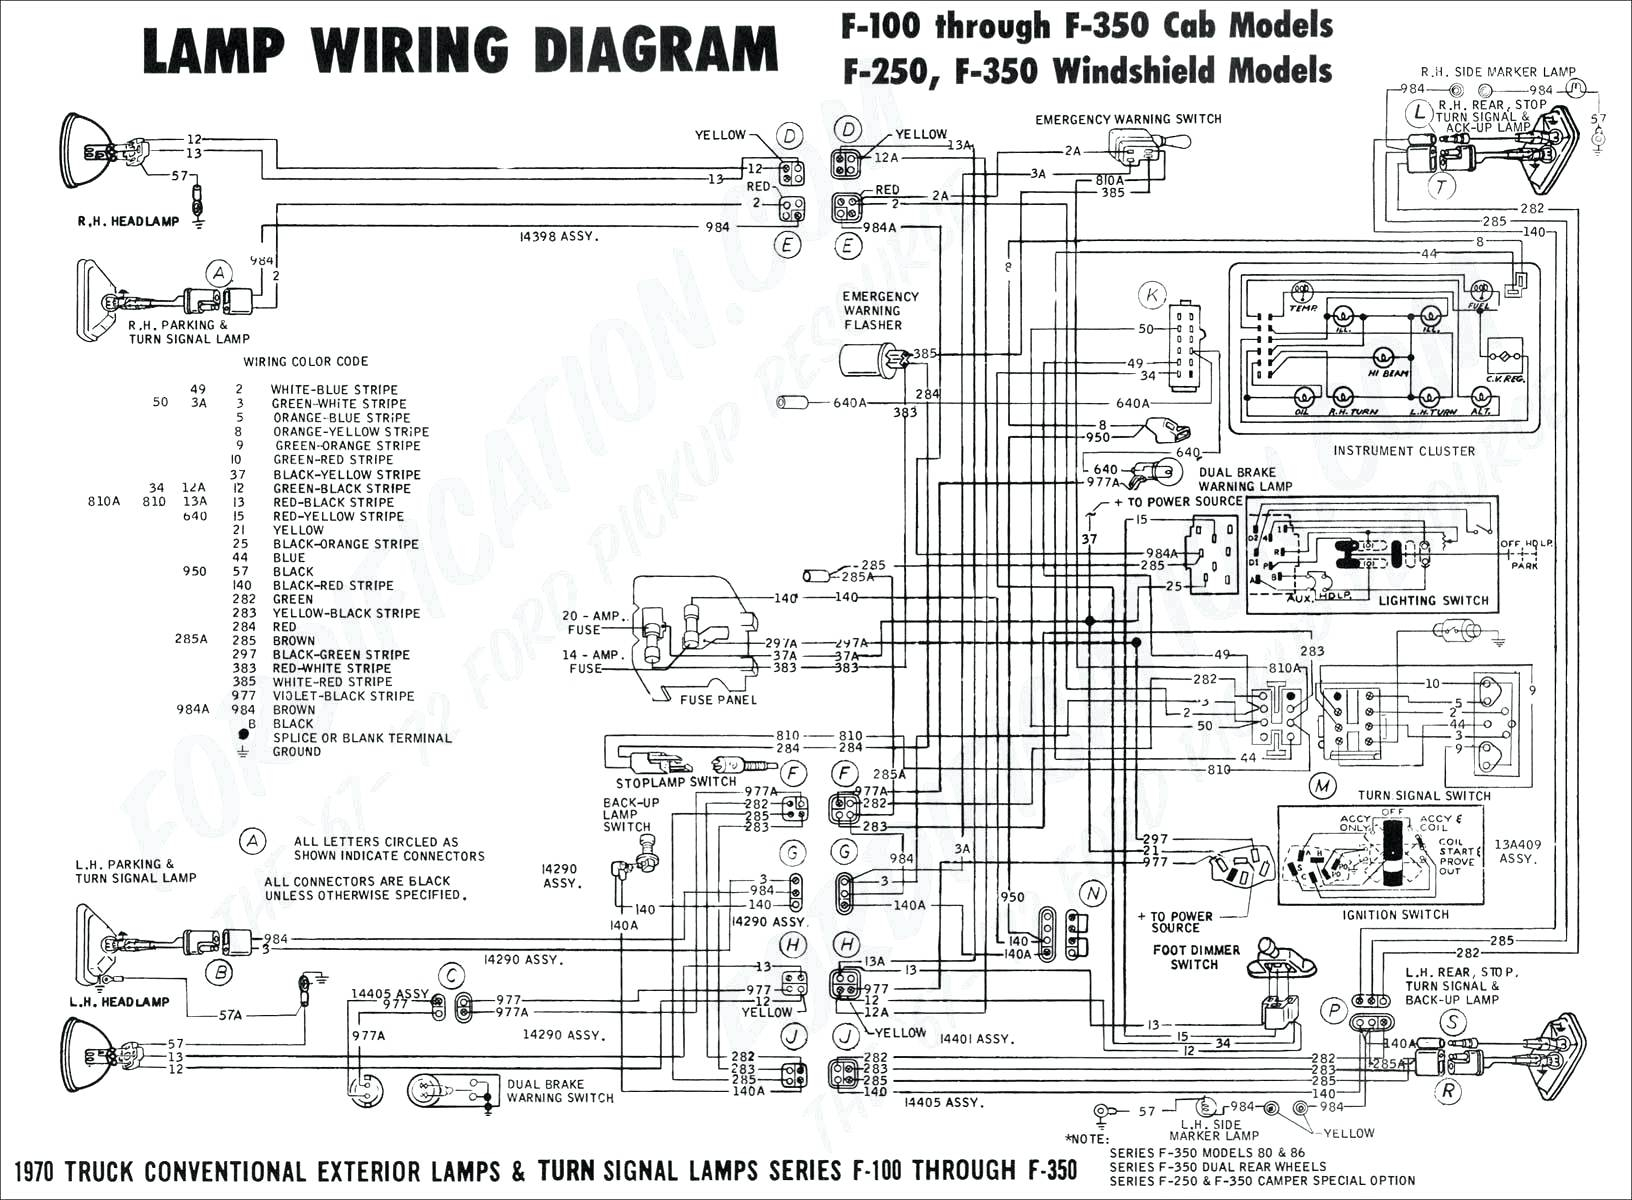 Harley Davidson 2003 Softail Deuce Wiring Diagram | Wiring ... on